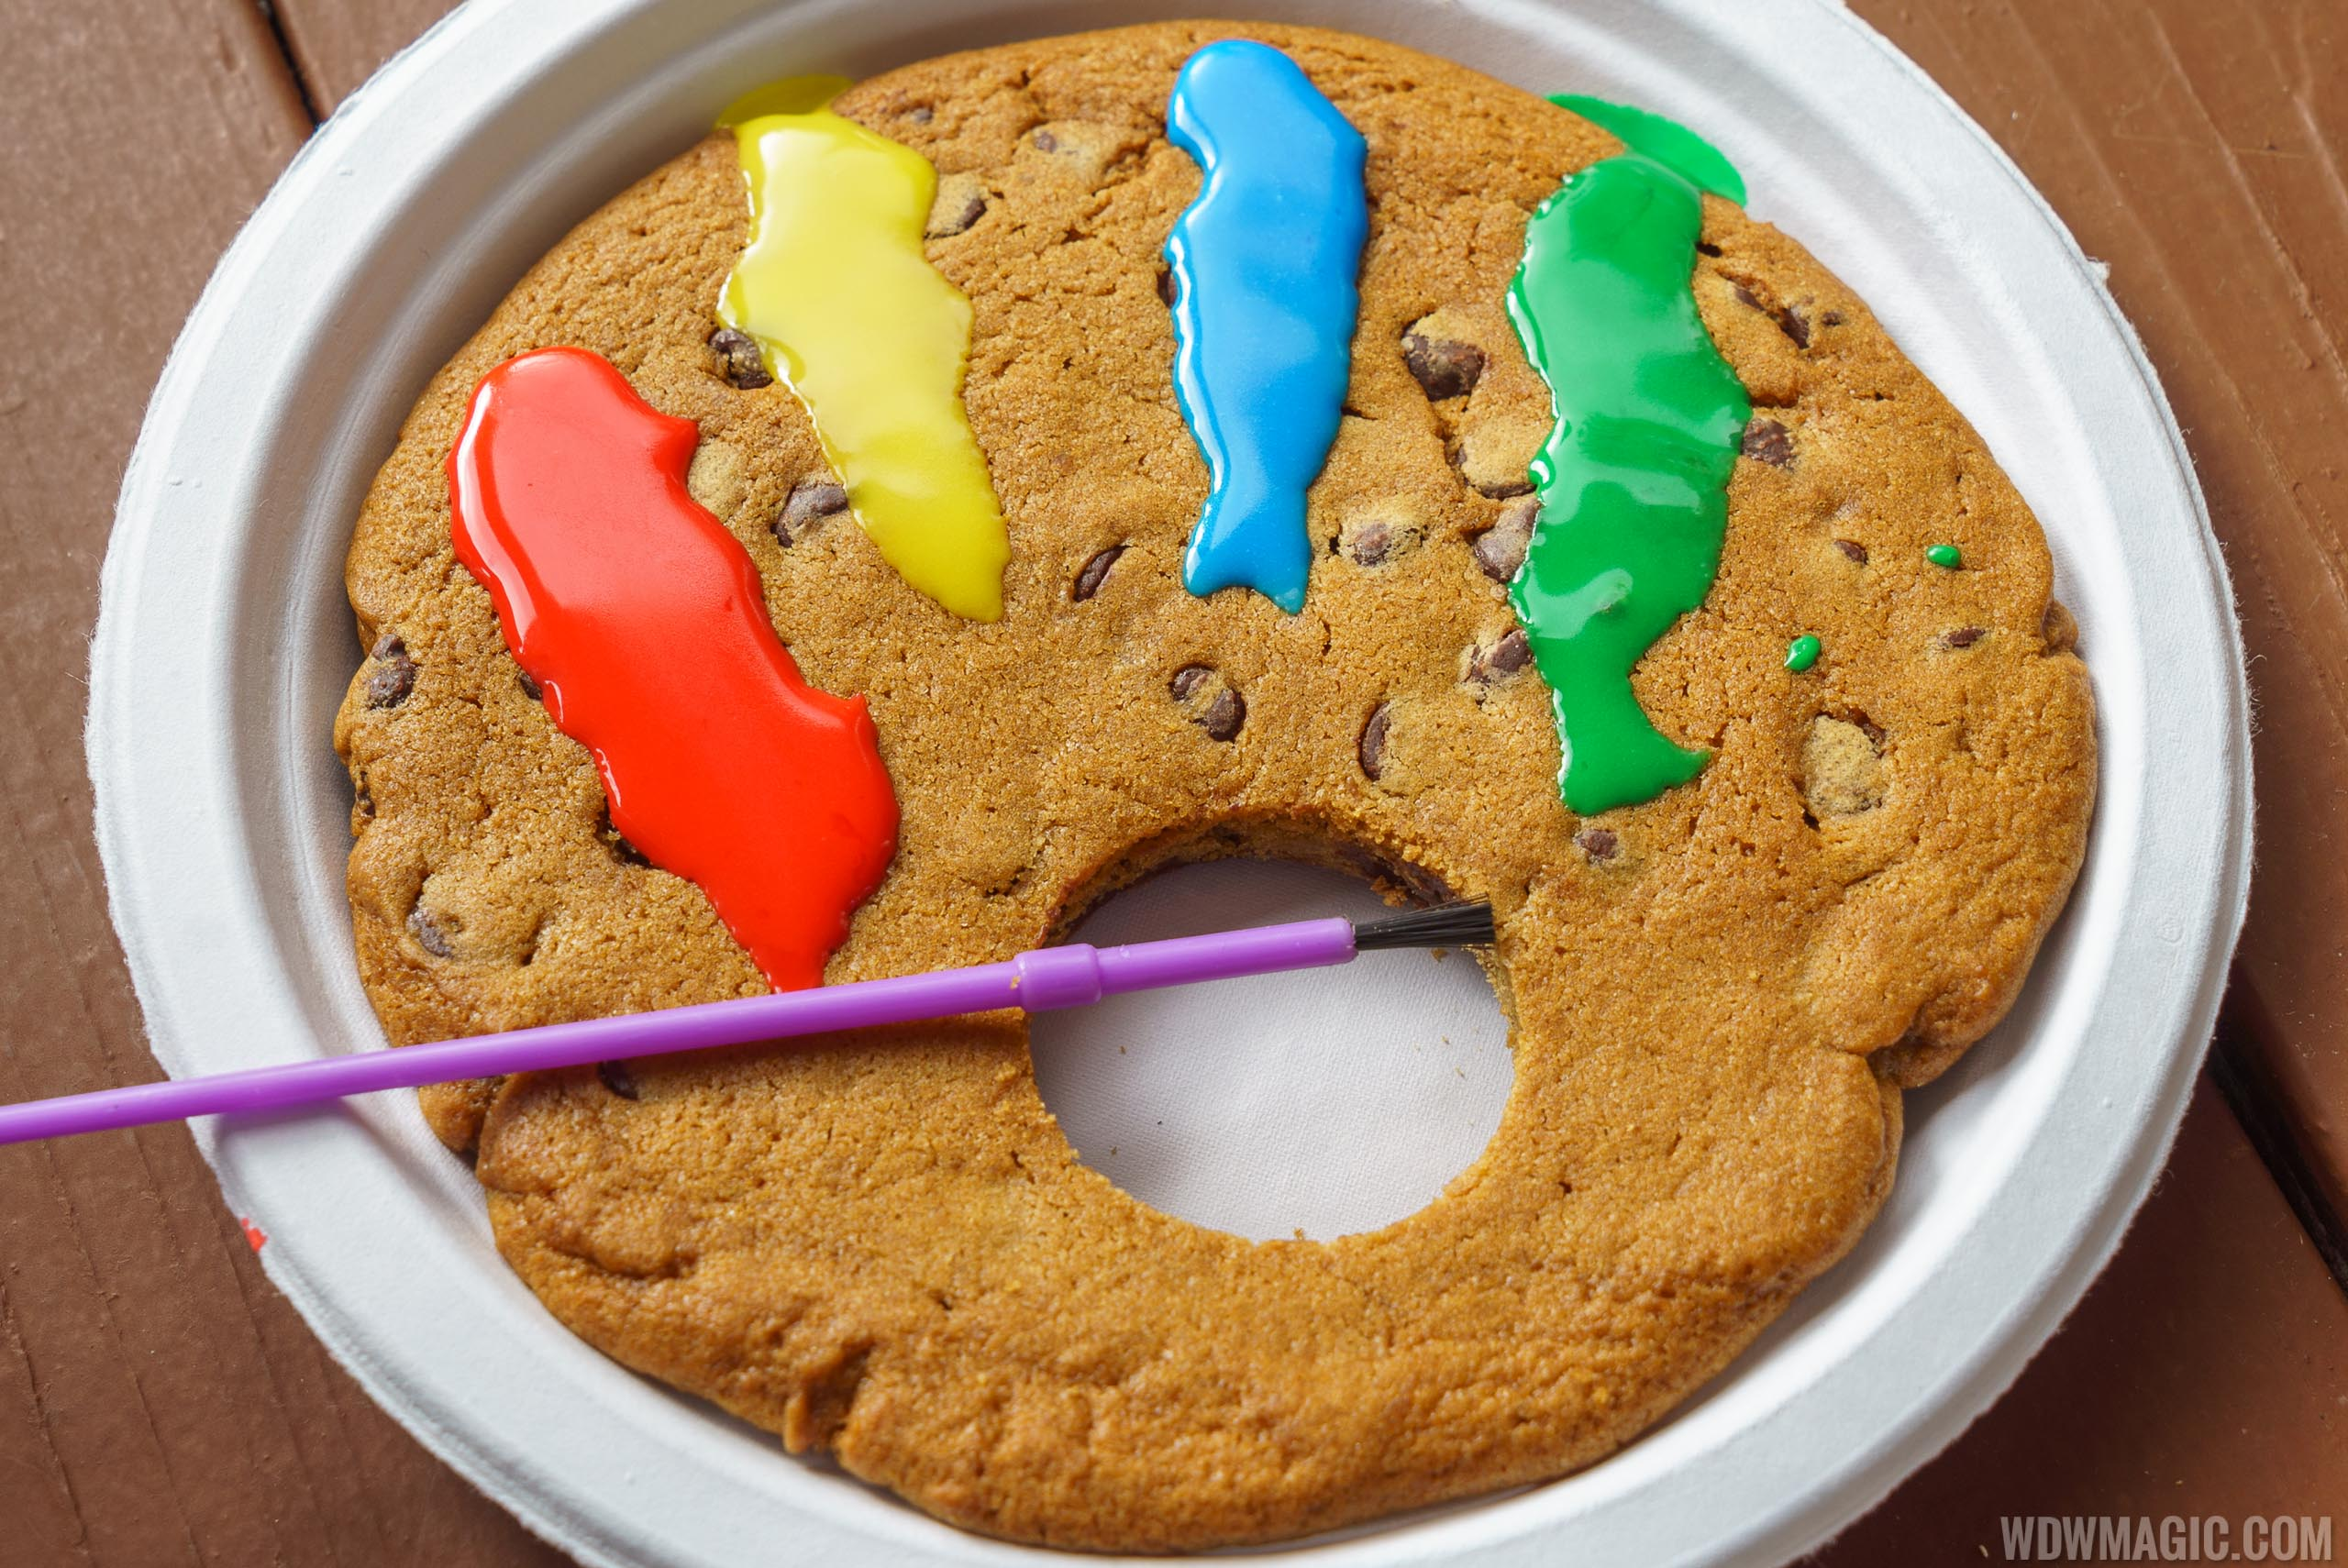 Festival of the Arts Food Studio - The Artist's Table - Jumbo Chocolate Chip Cookie